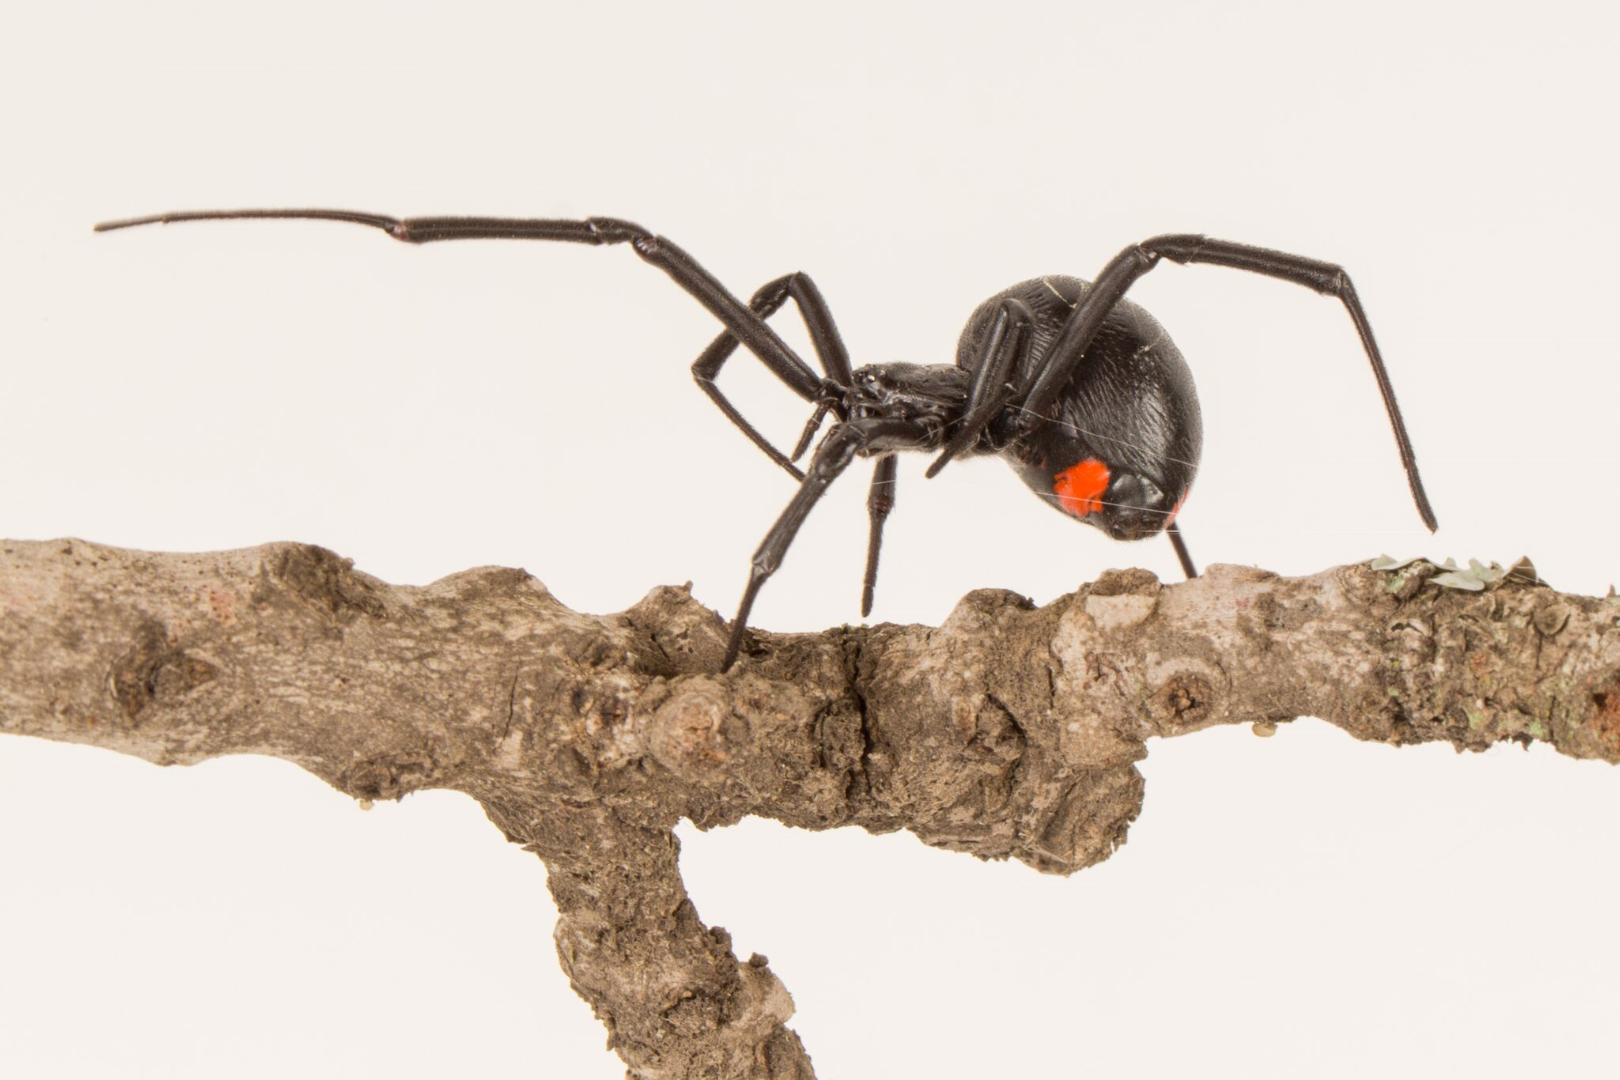 Females of the he Phinda Button spider have distinctive red markings. Credit: Pen News